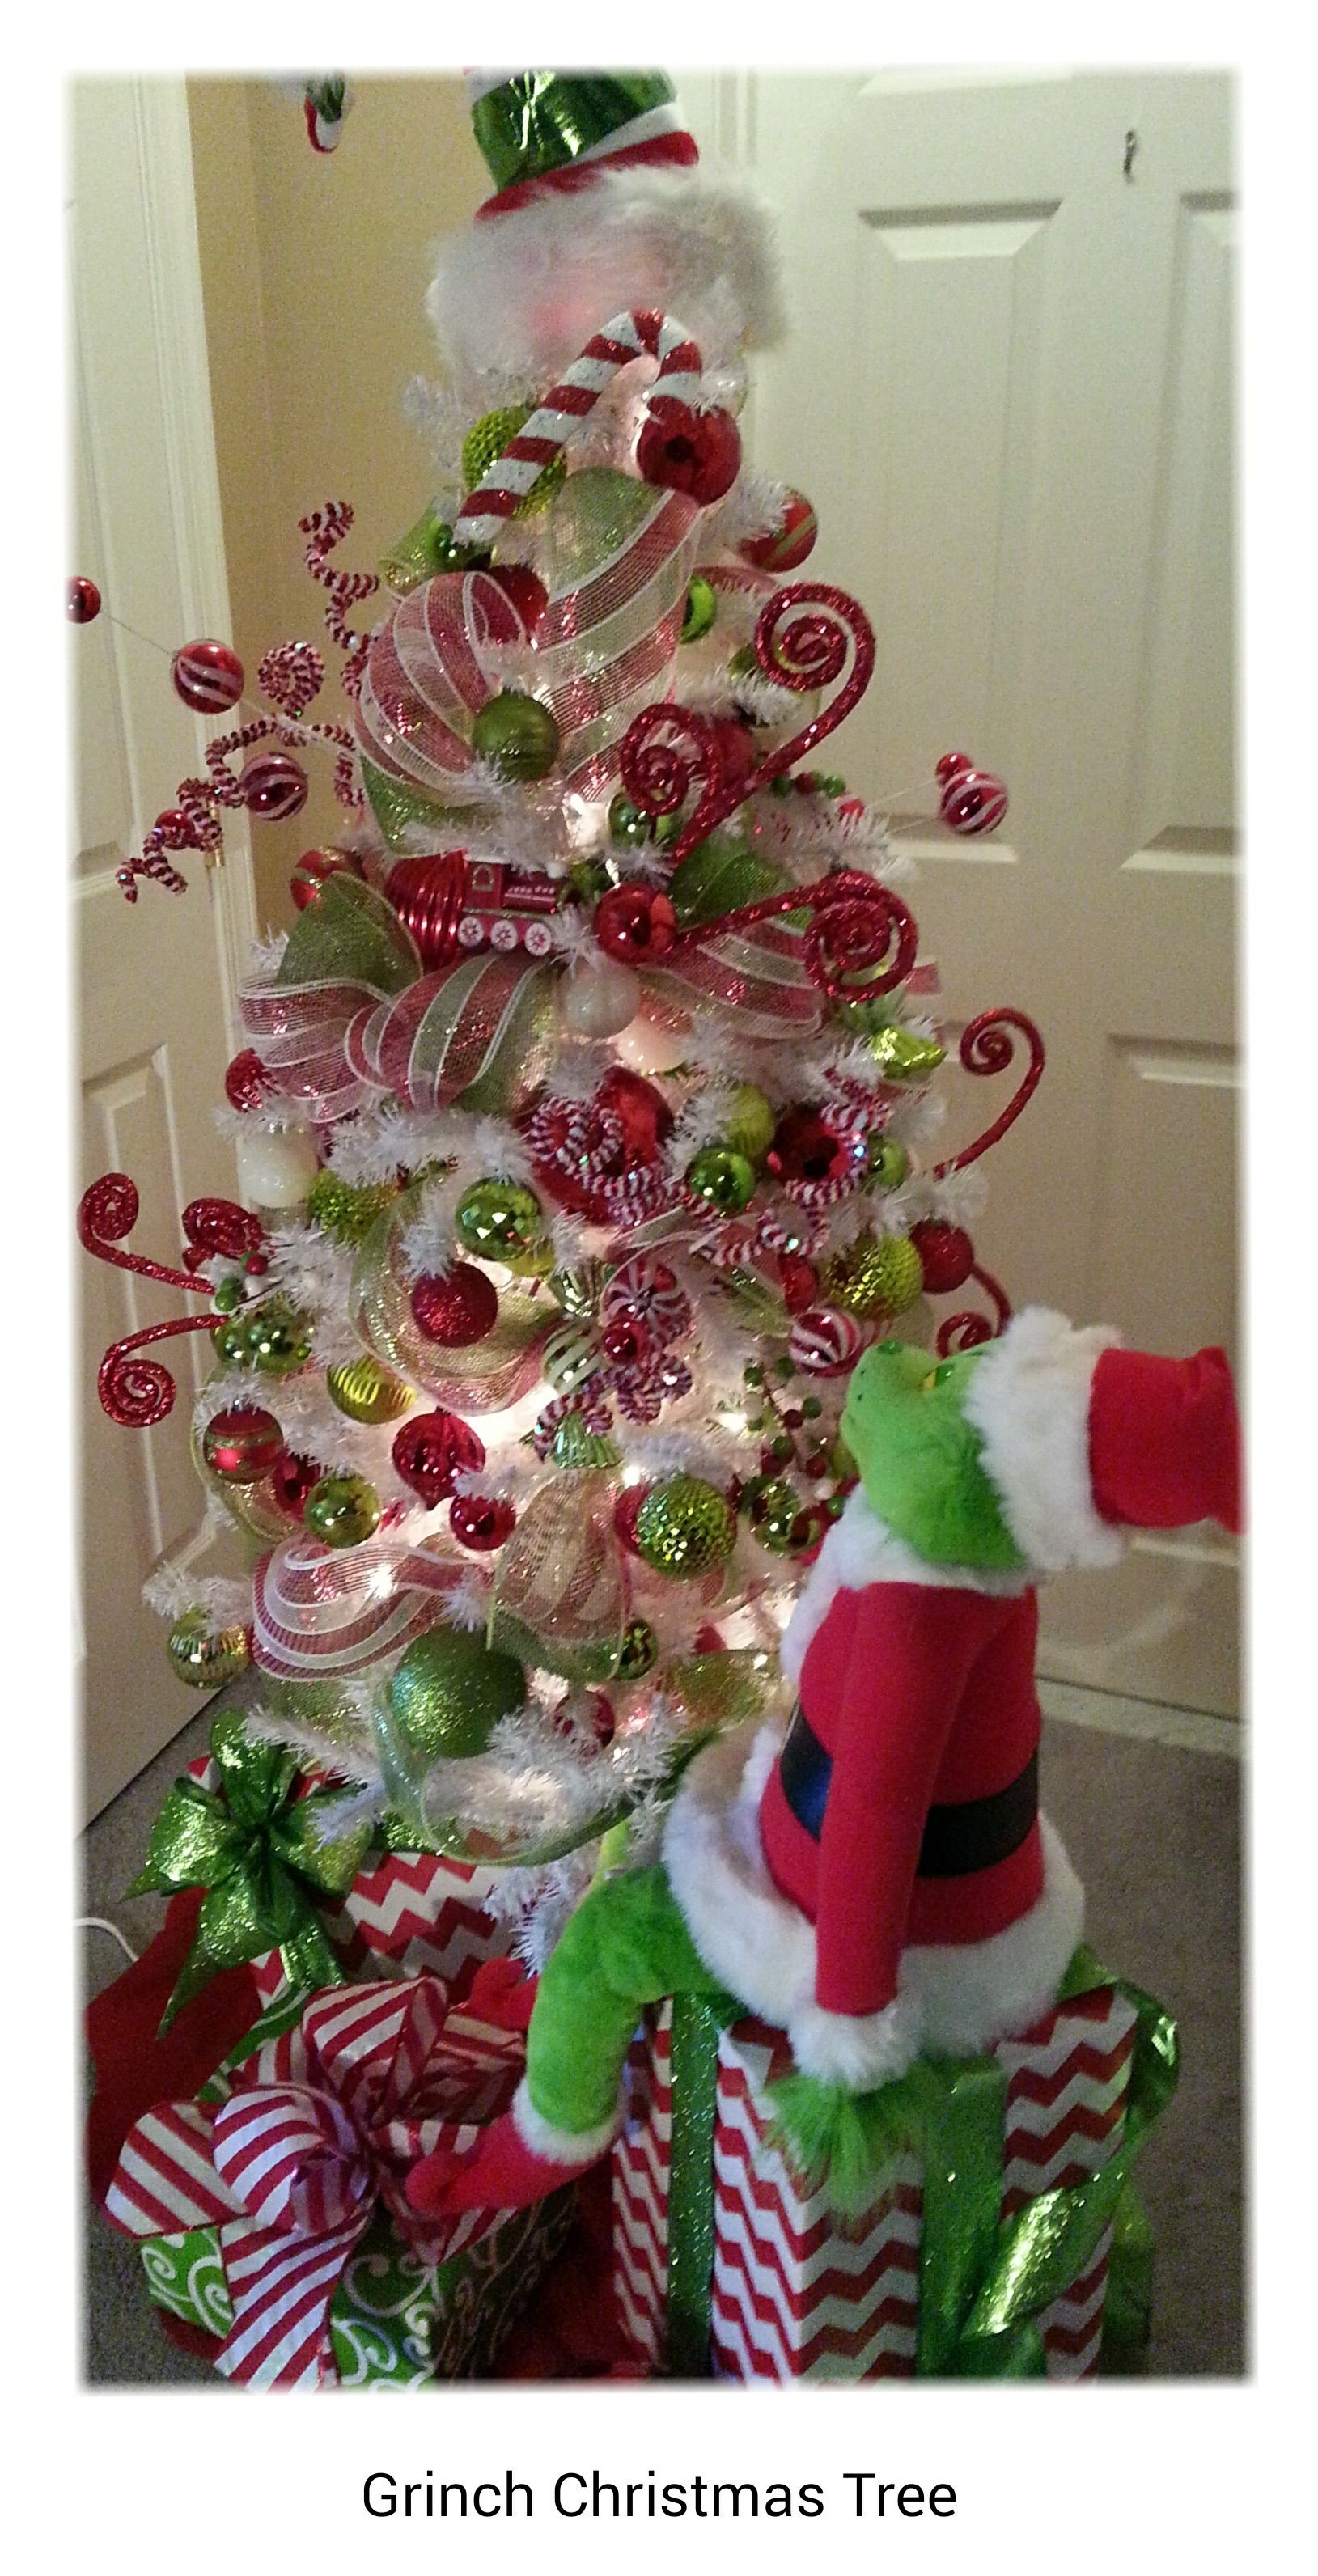 Grinch Has His Eye On Christmas Grinch Christmas Treechristmas Decorations